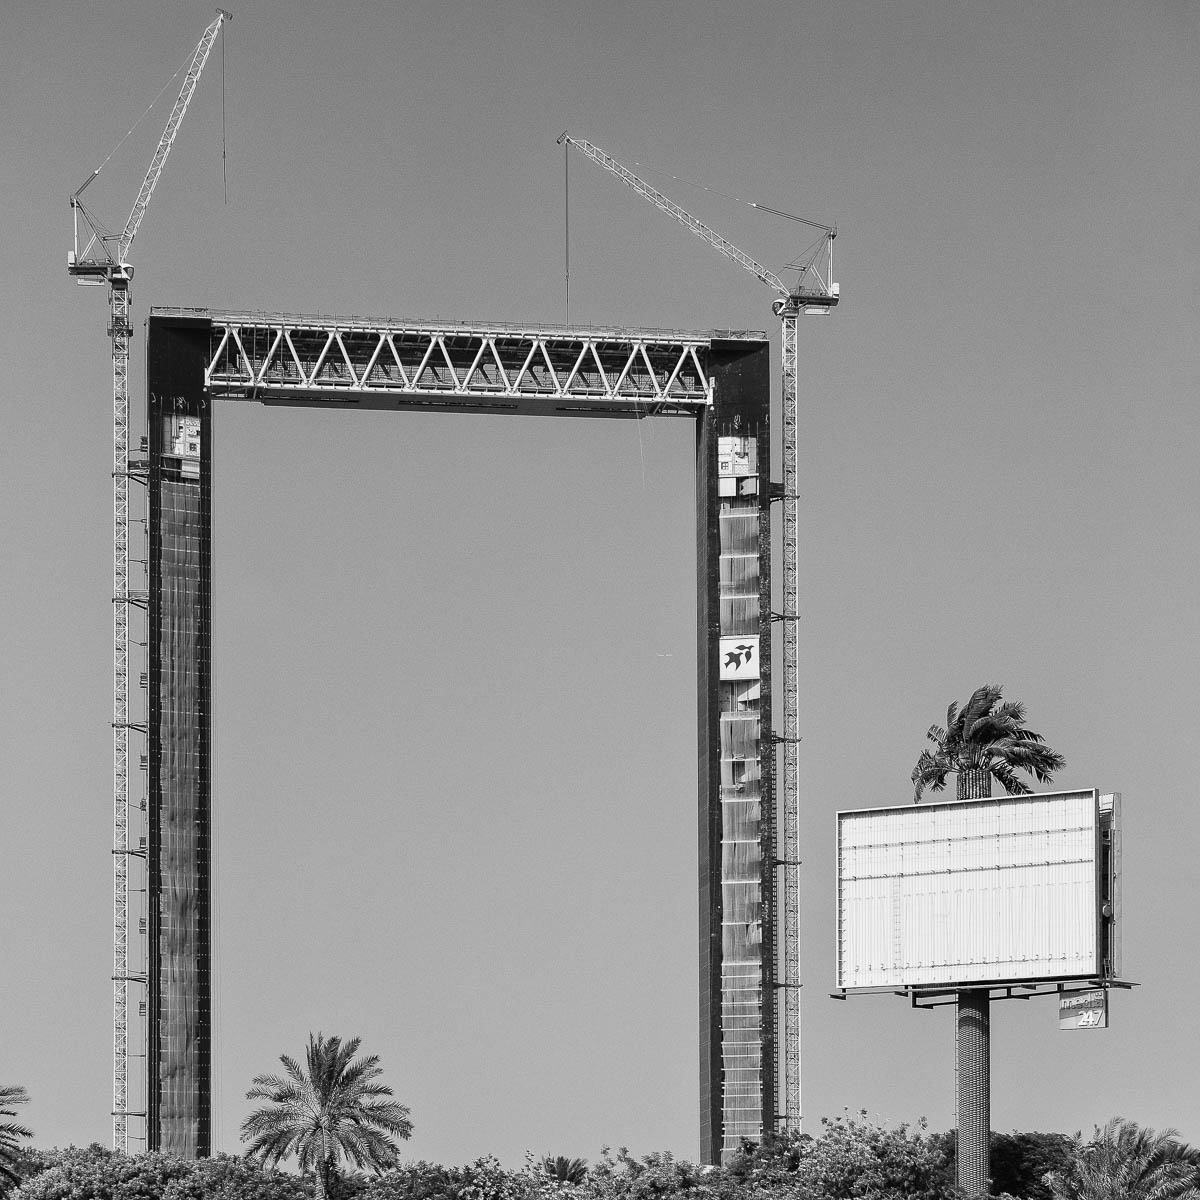 The largest picture frame in the world and a palm tree billboard, Dubai, UAE